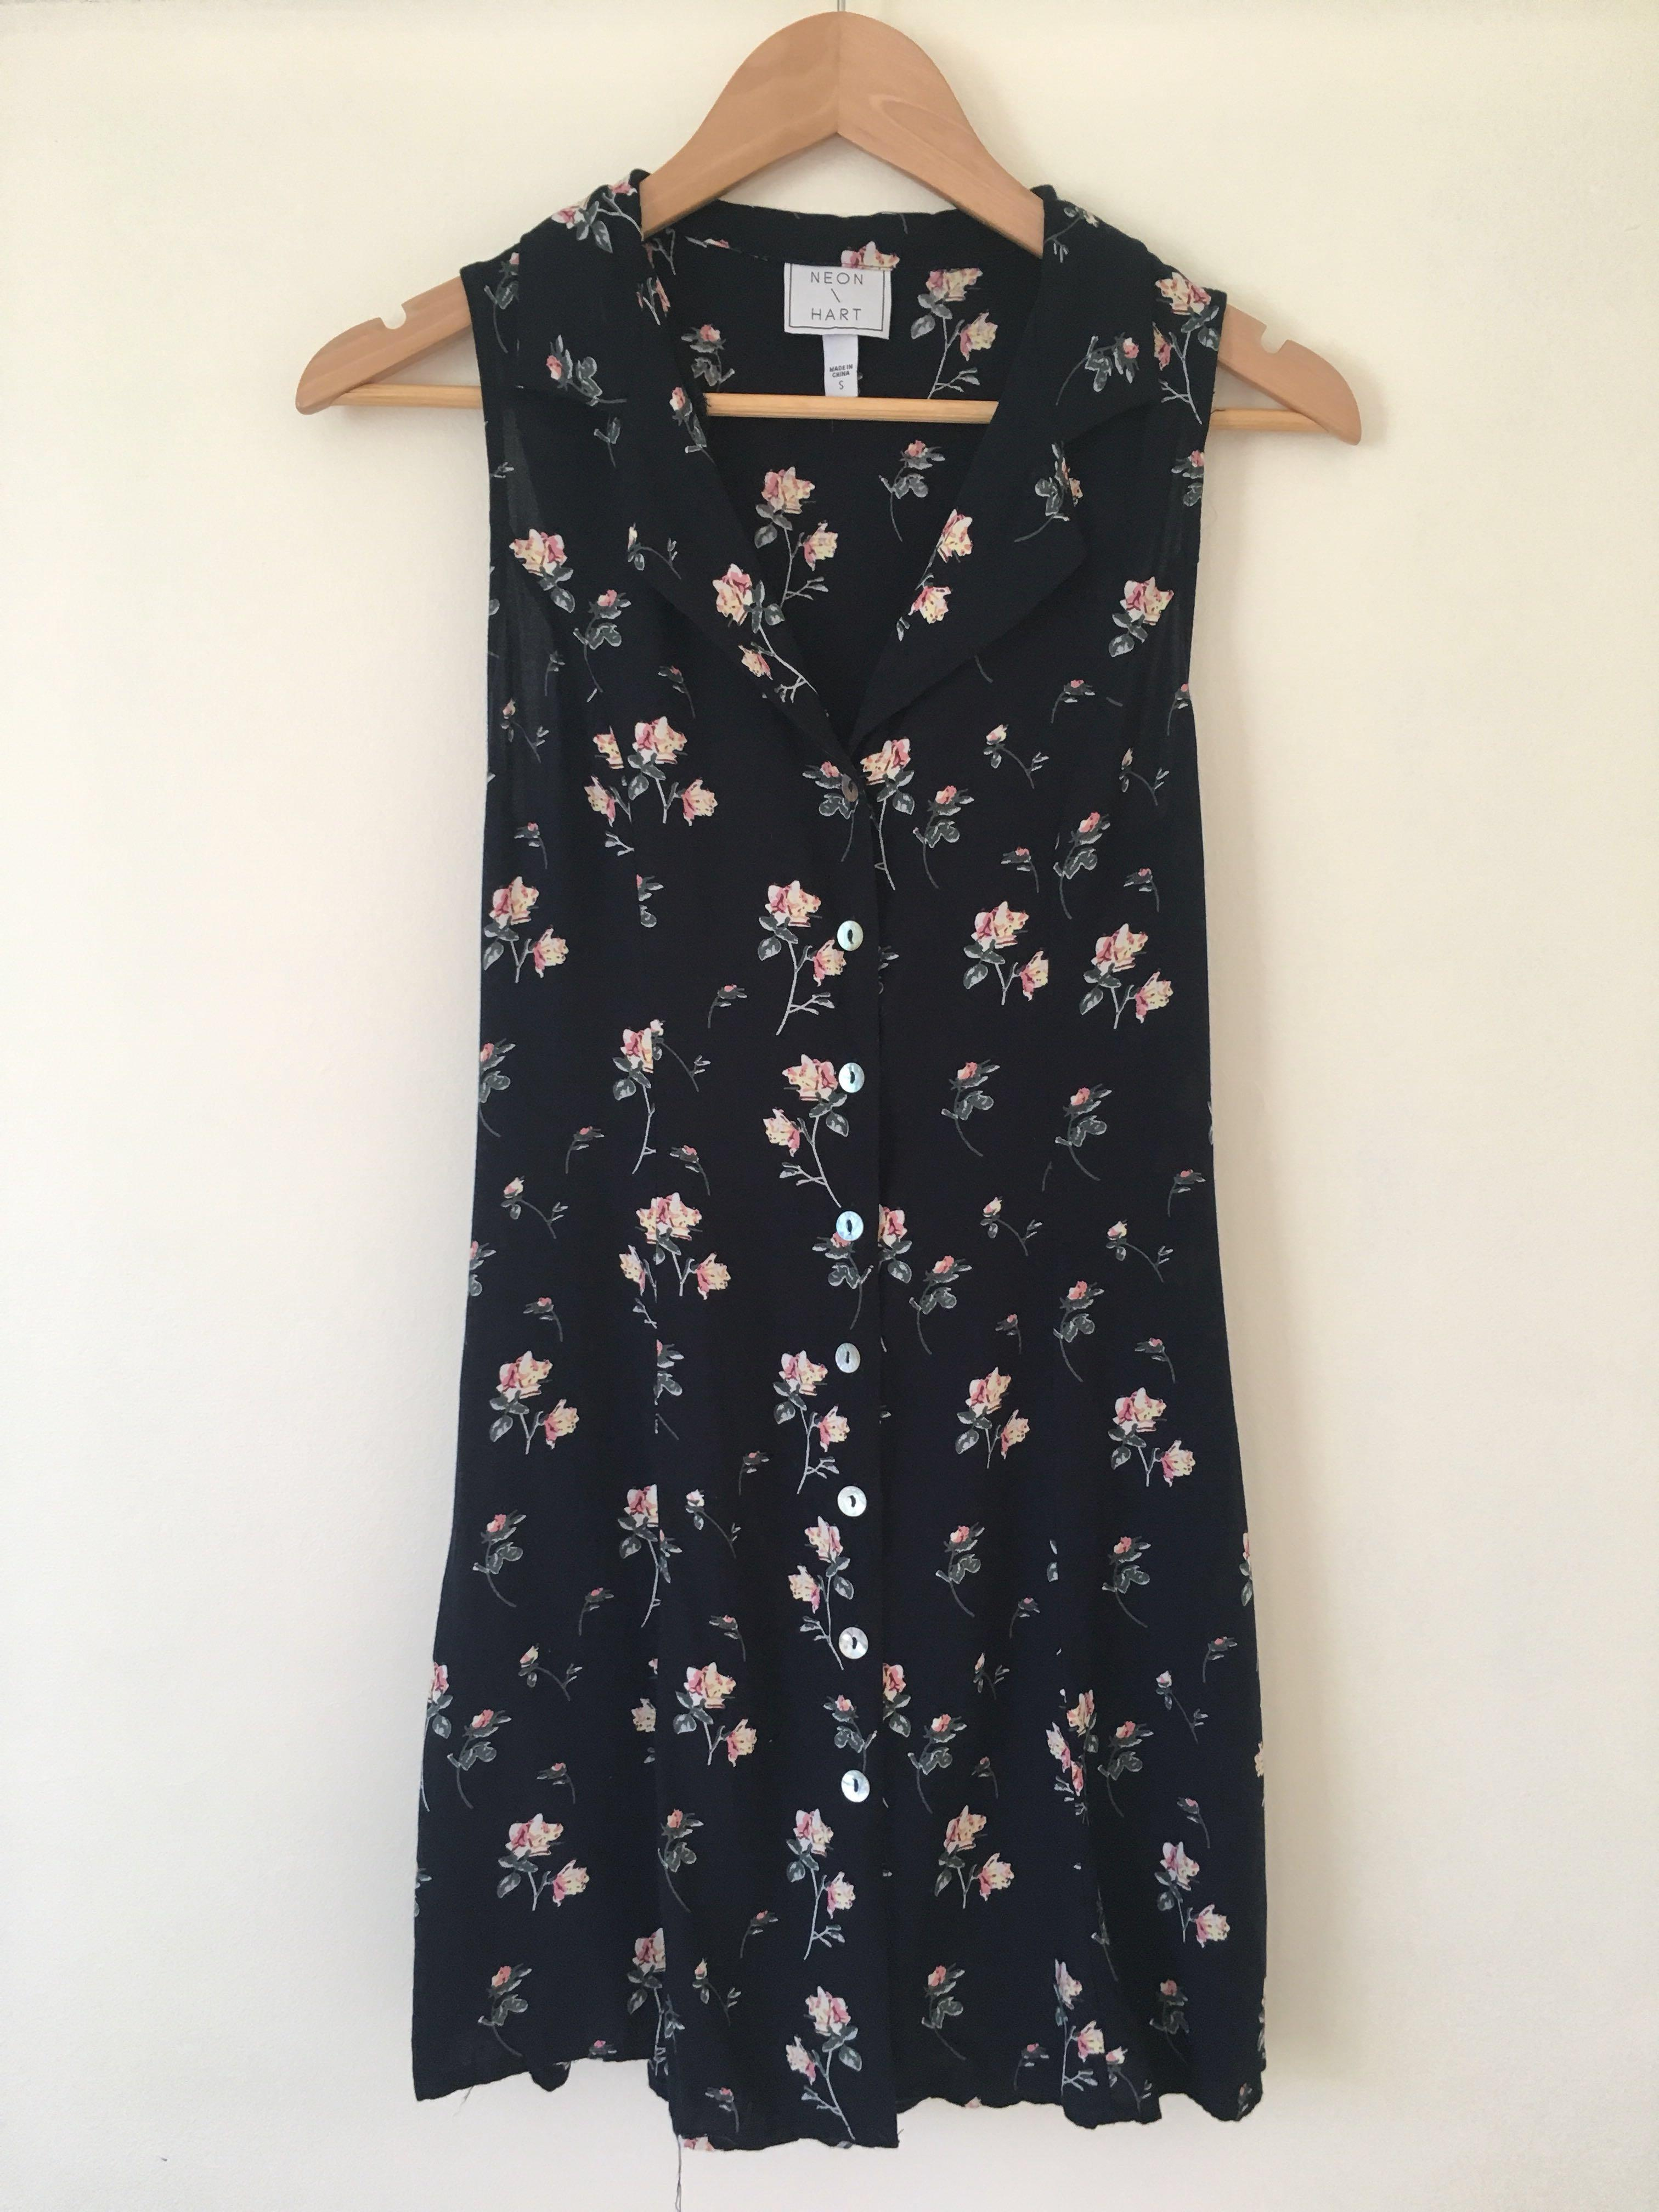 Neon Hart button front sleeveless navy blue dress size small General Pants